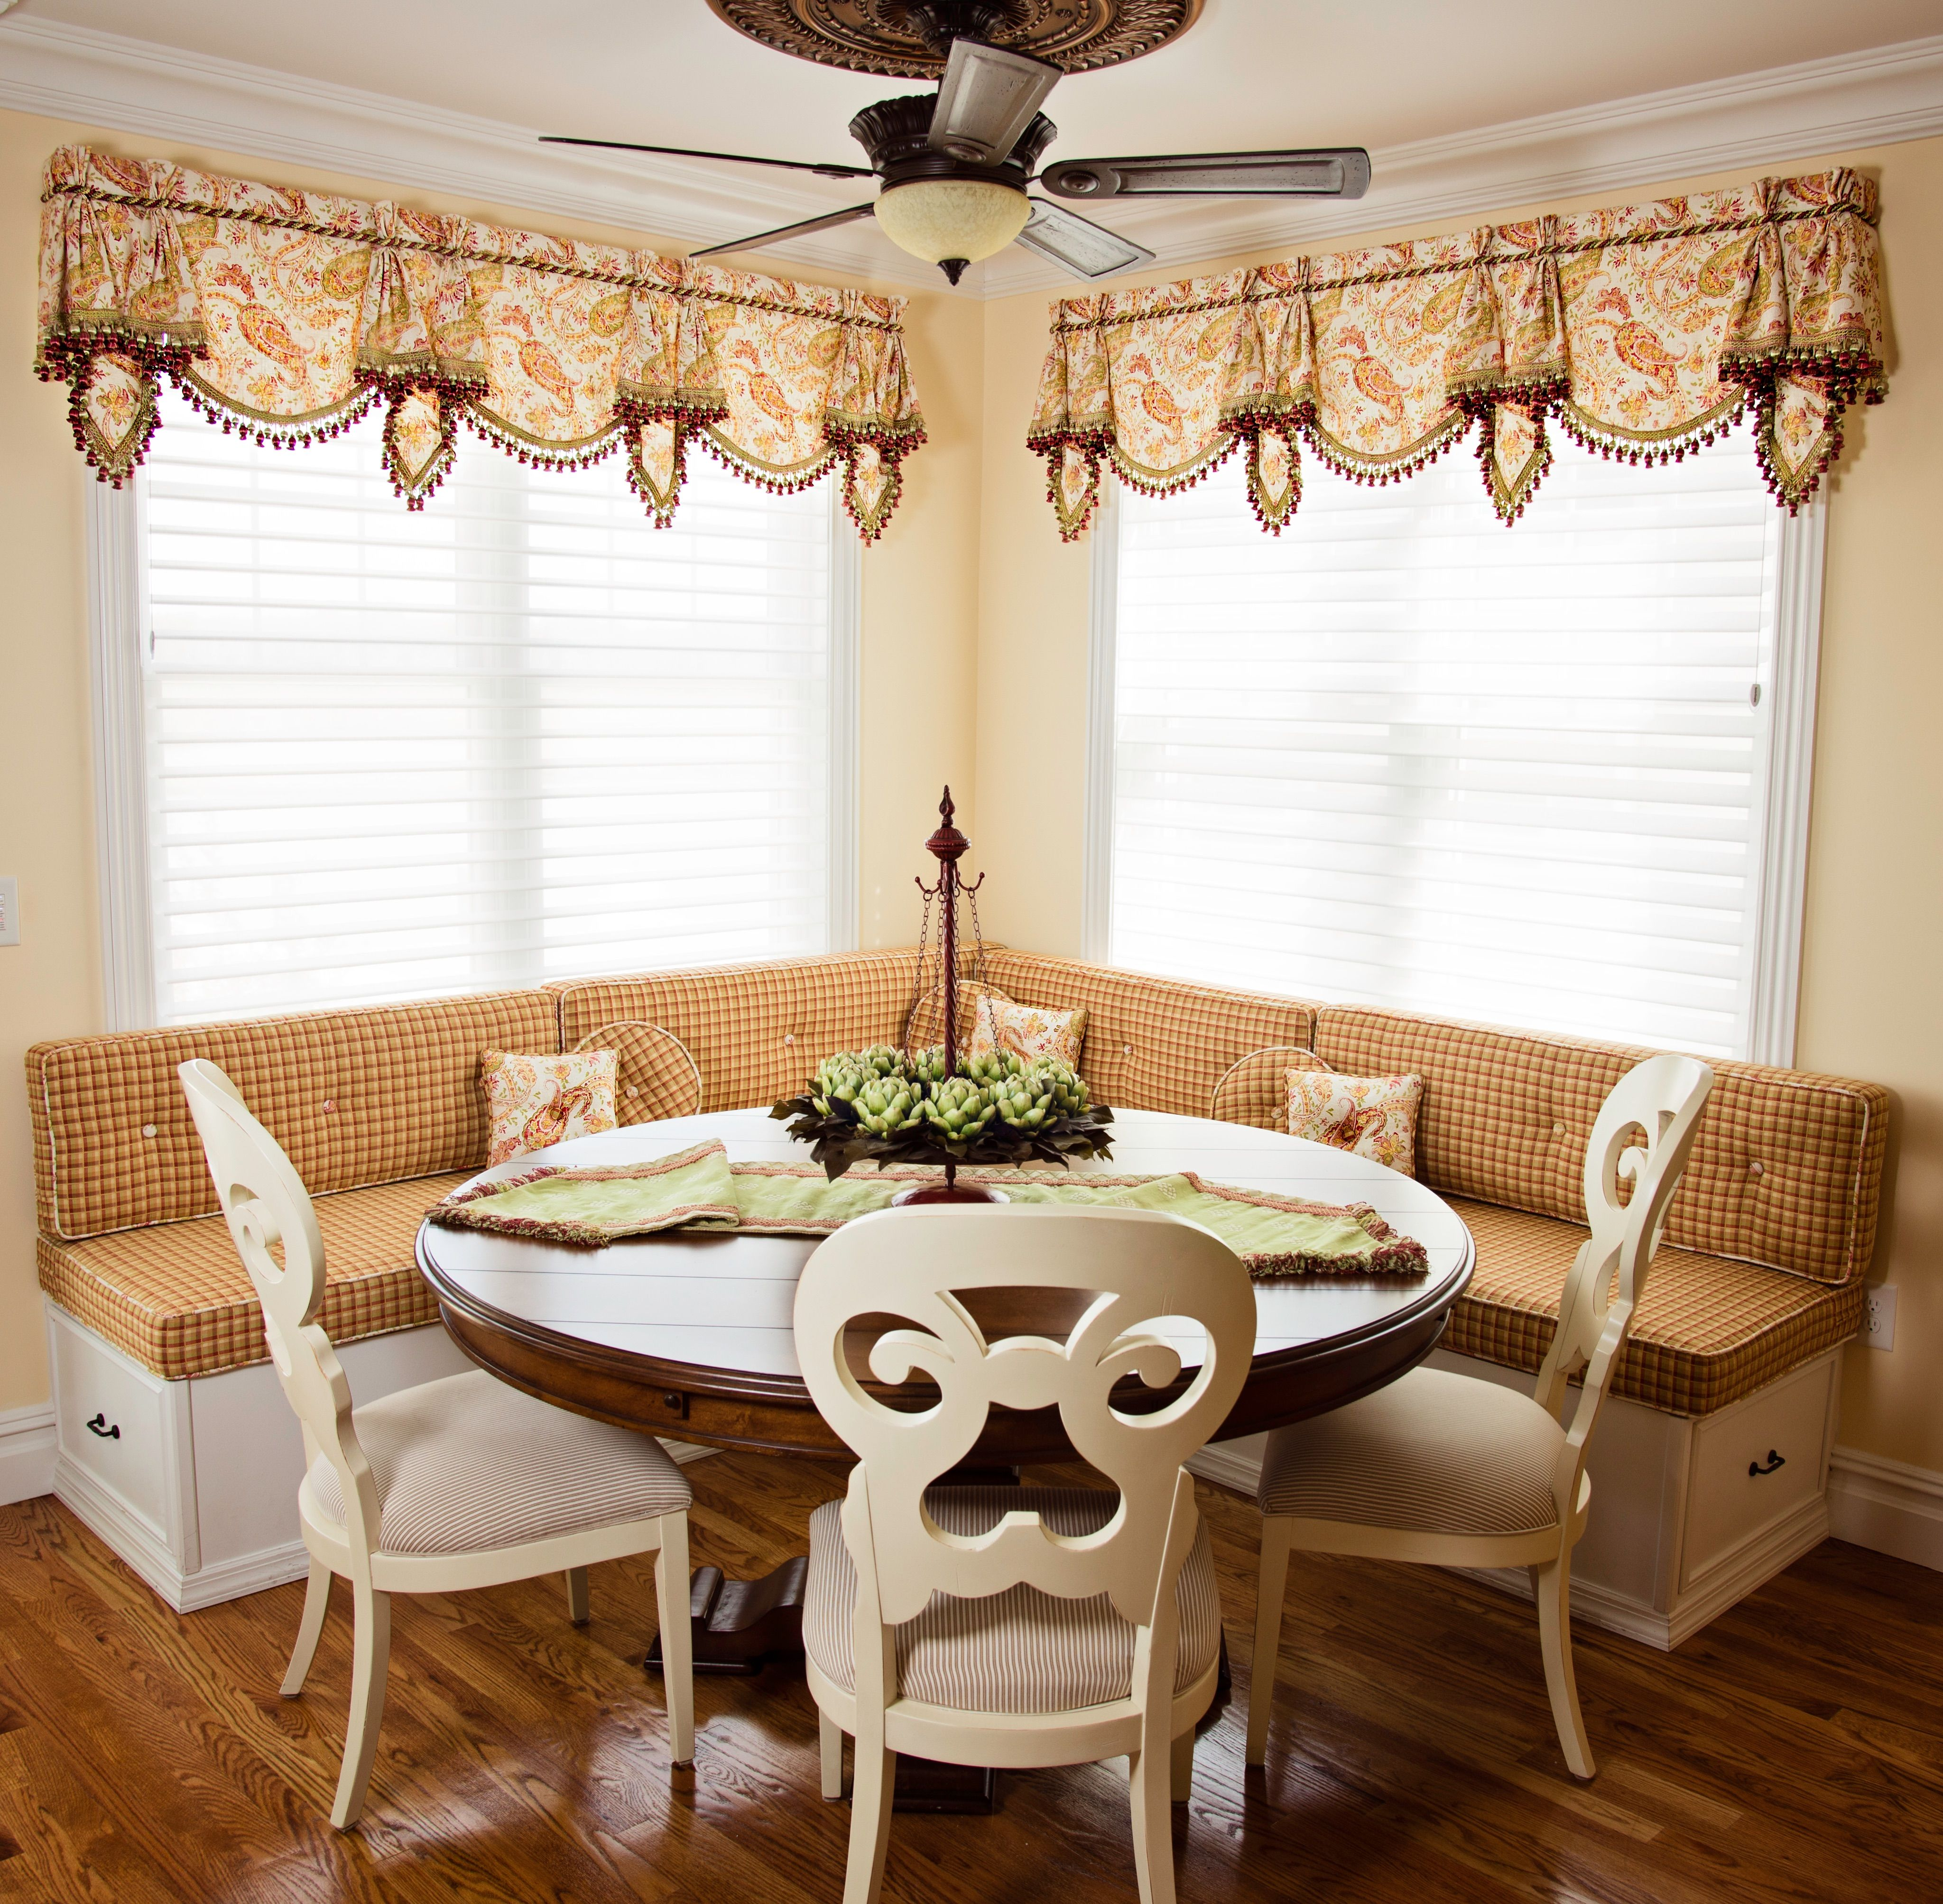 The window treatments here allow for there to be a connection in